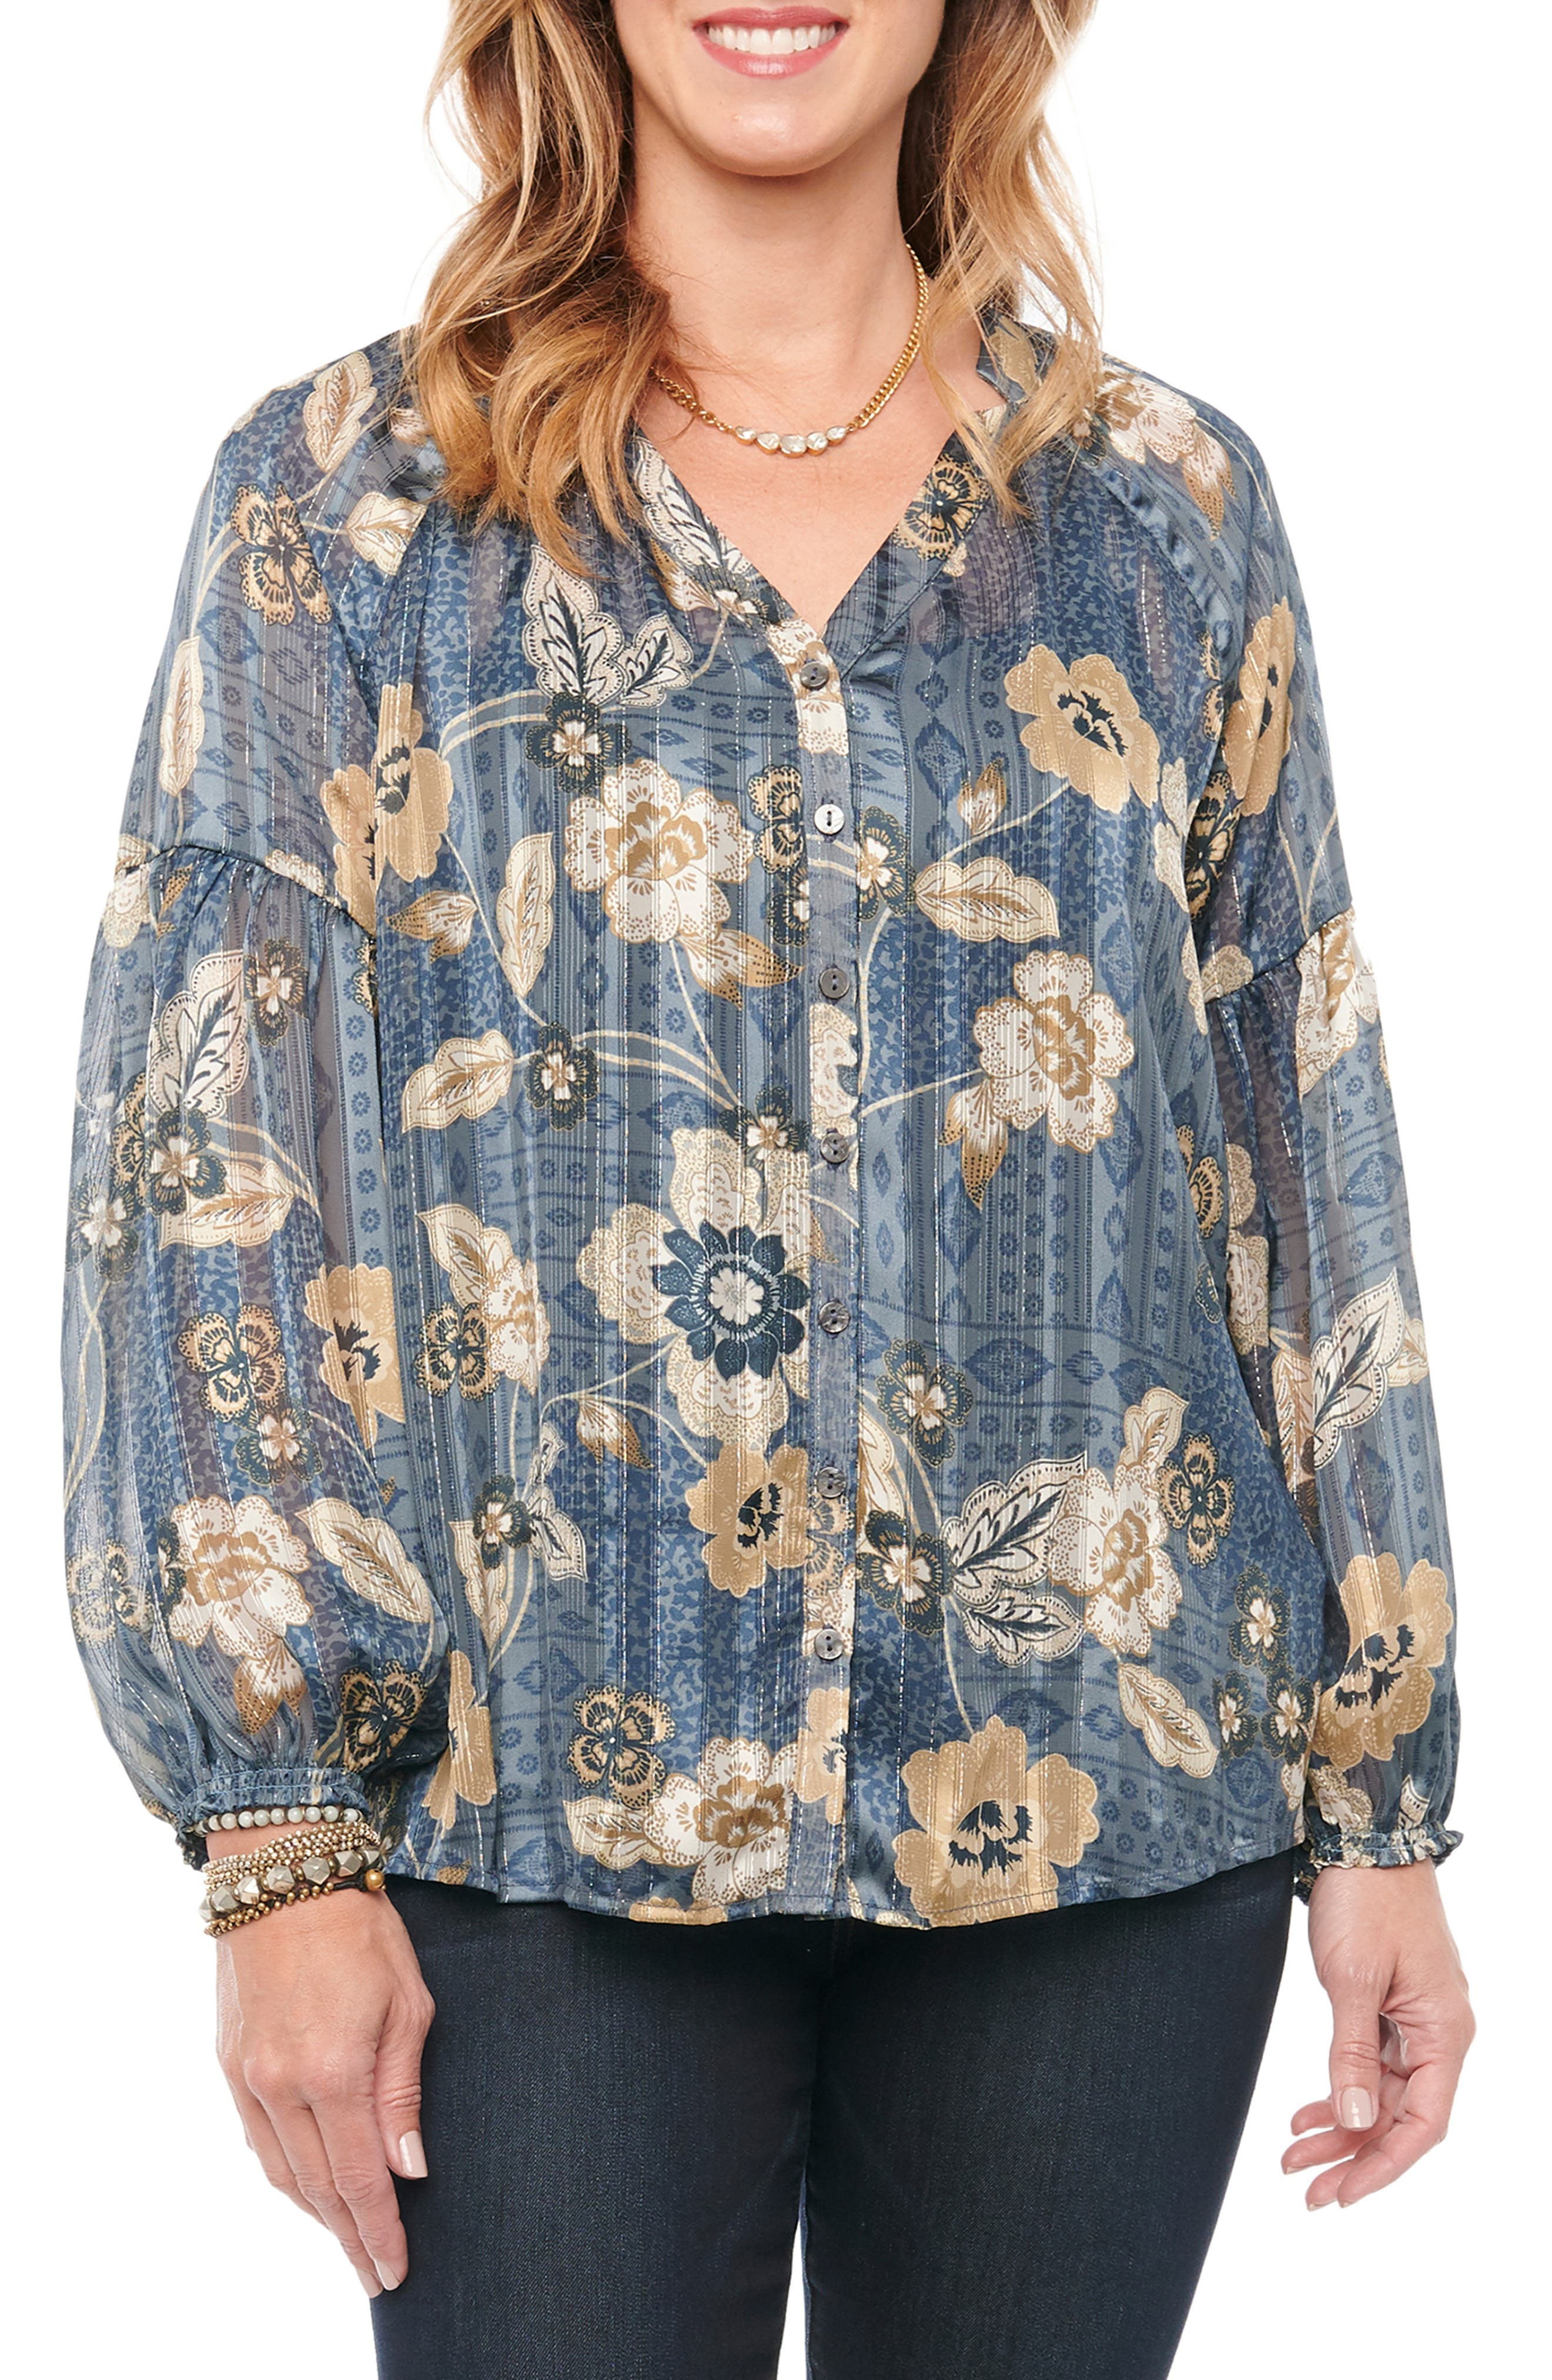 Awash in a floral print and shimmering metallic shadow stripes, this button-down blouse is workwear-ready and equally suitable for your casual style. Style Name: Wit & Wisdom Floral Metallic Shadow Stripe Blouse (Plus Size). Style Number: 6133445. Available in stores.